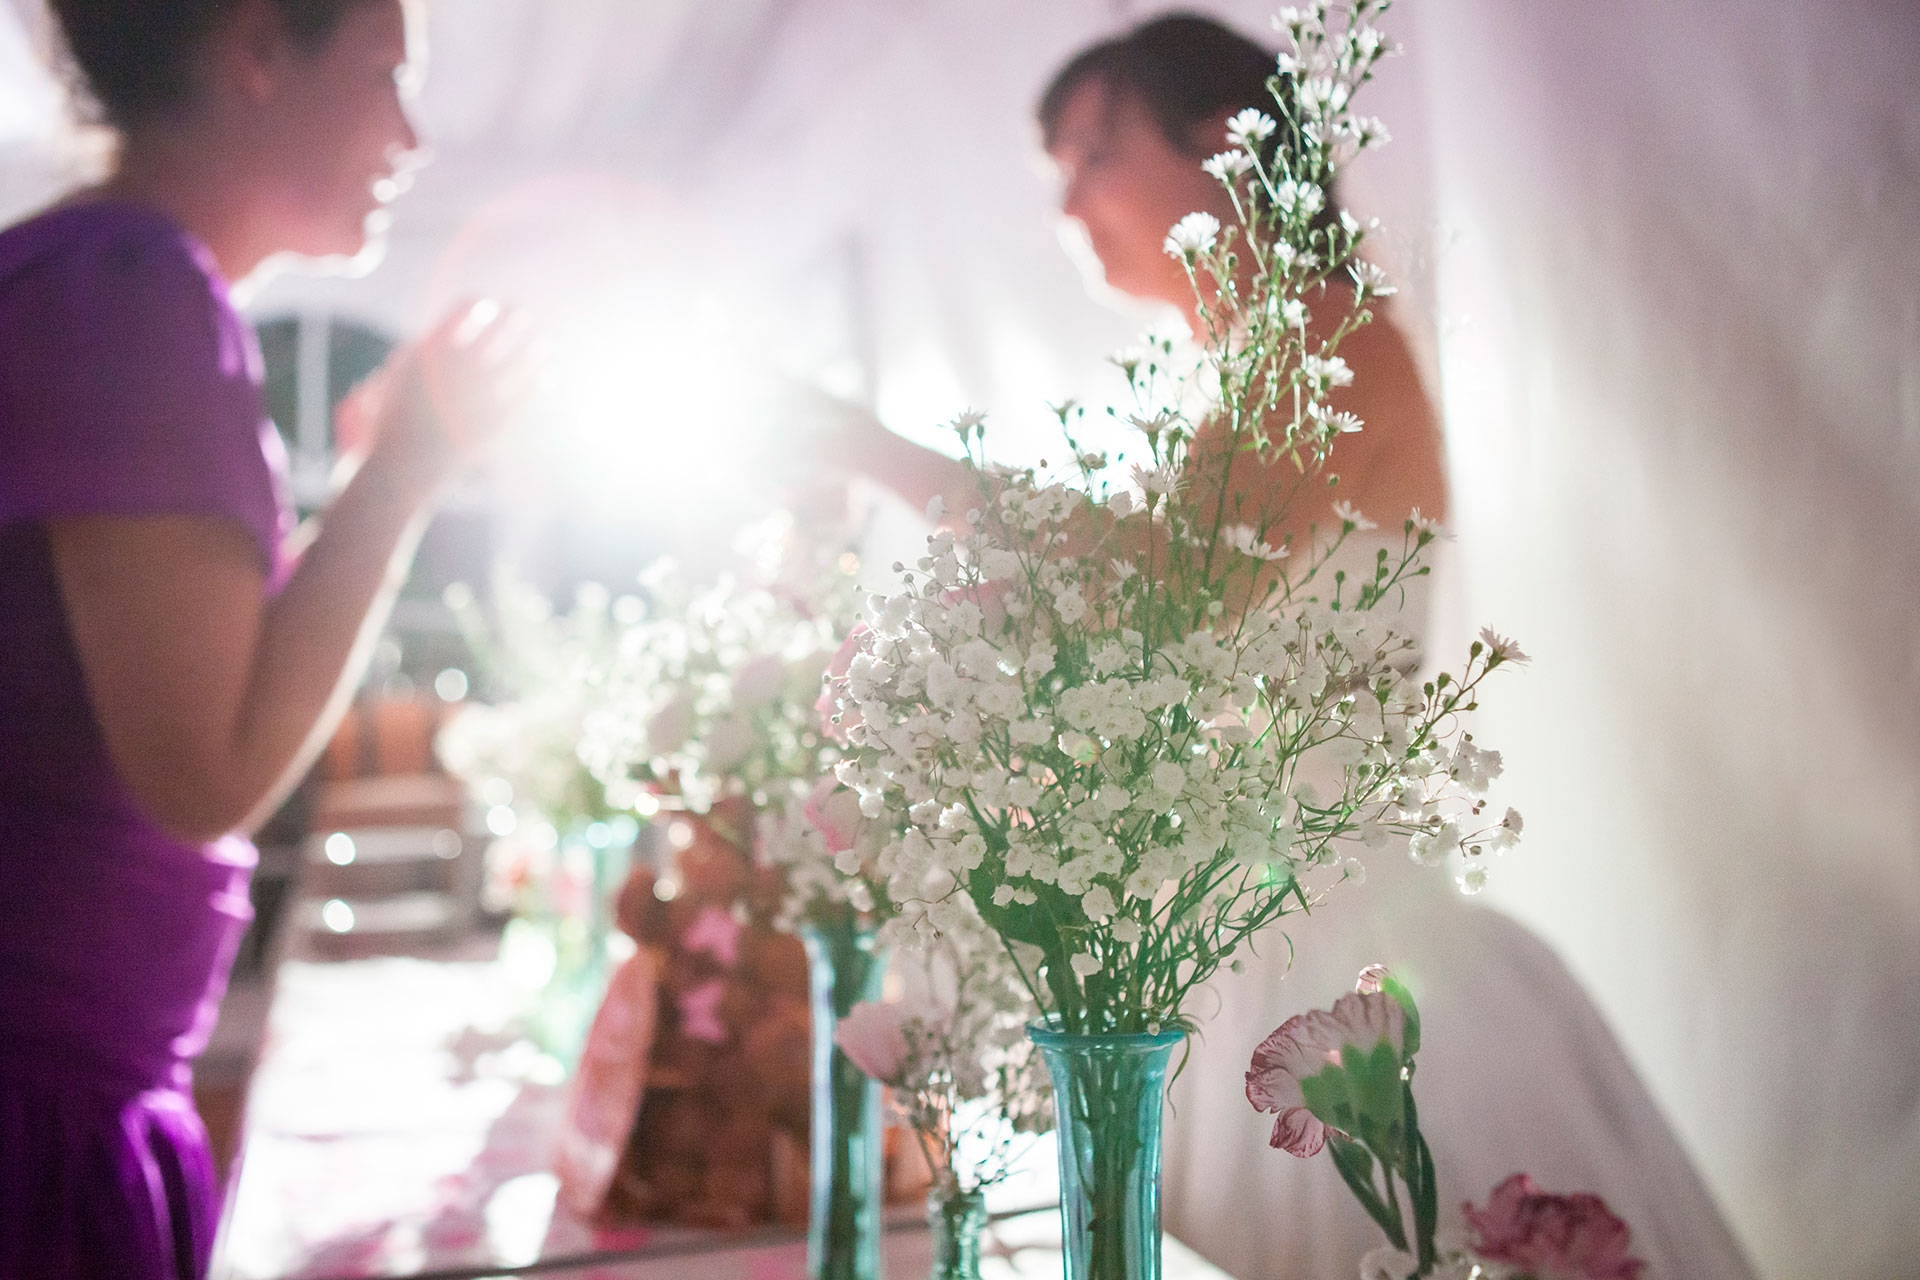 particuliers-evenements-mariages-oui-france&philippe-82